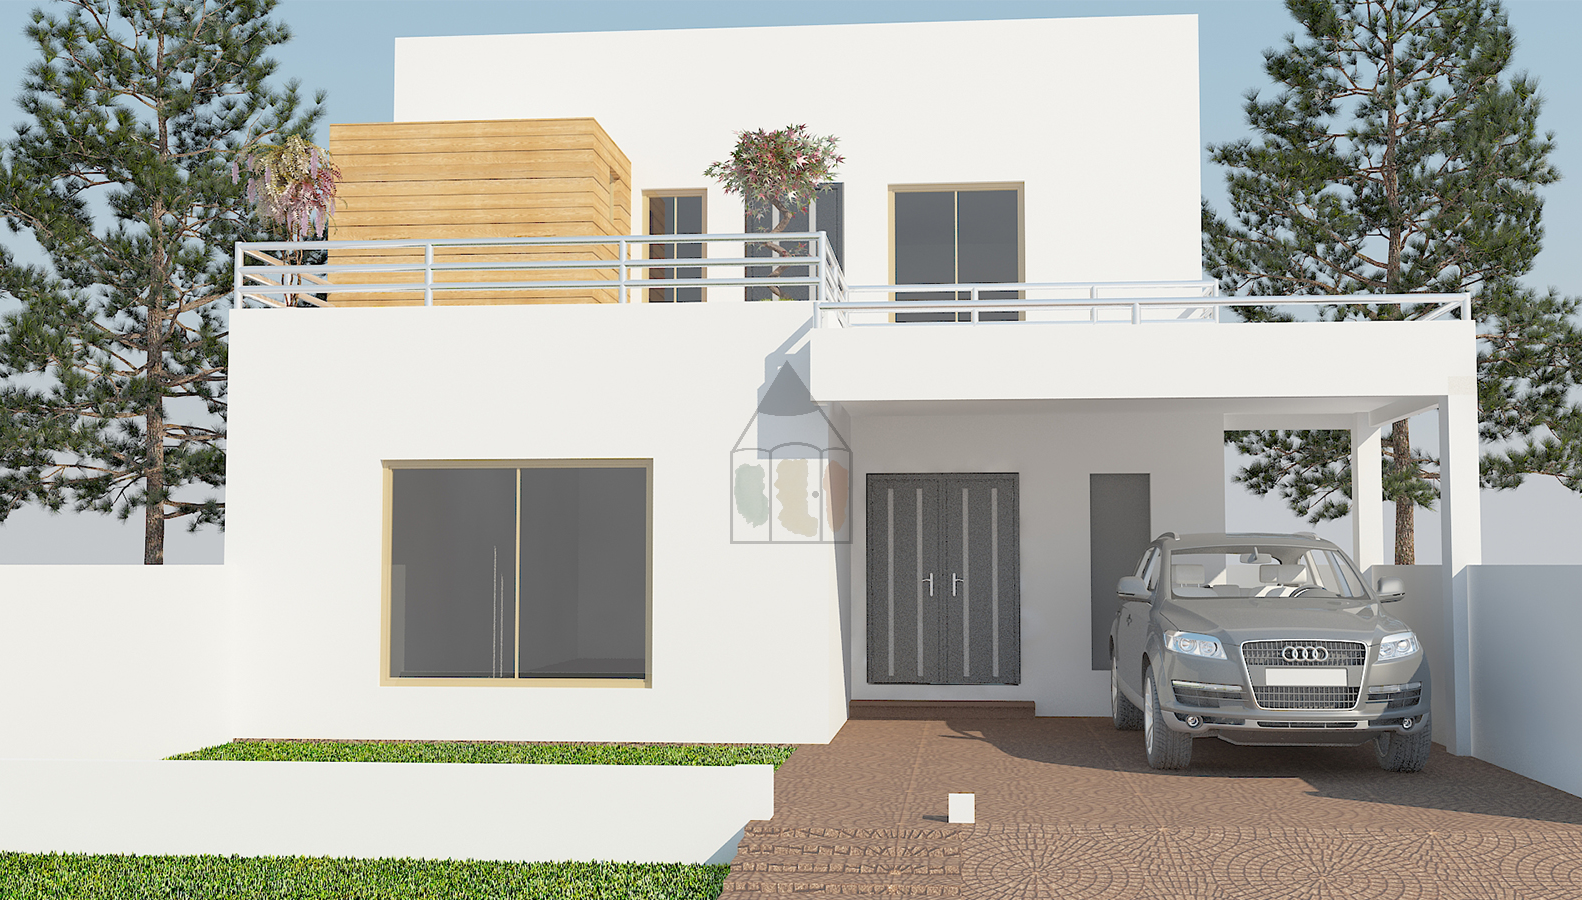 8 marla house plan design front elevation designed in Multan